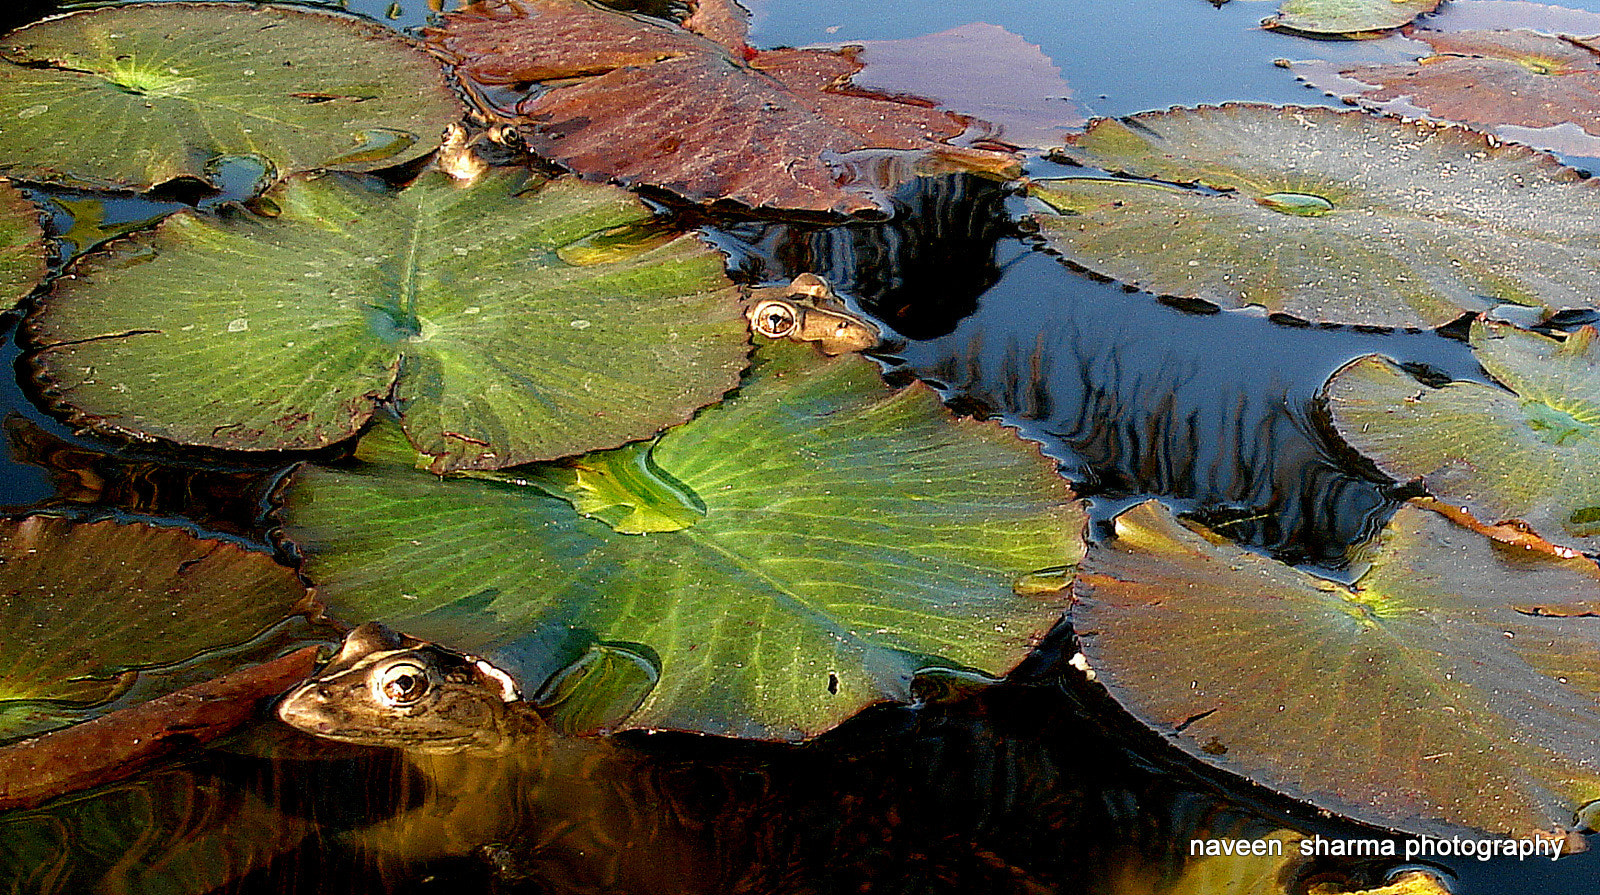 Photograph THREE FROGS TOGETHER by naveen sharma on 500px